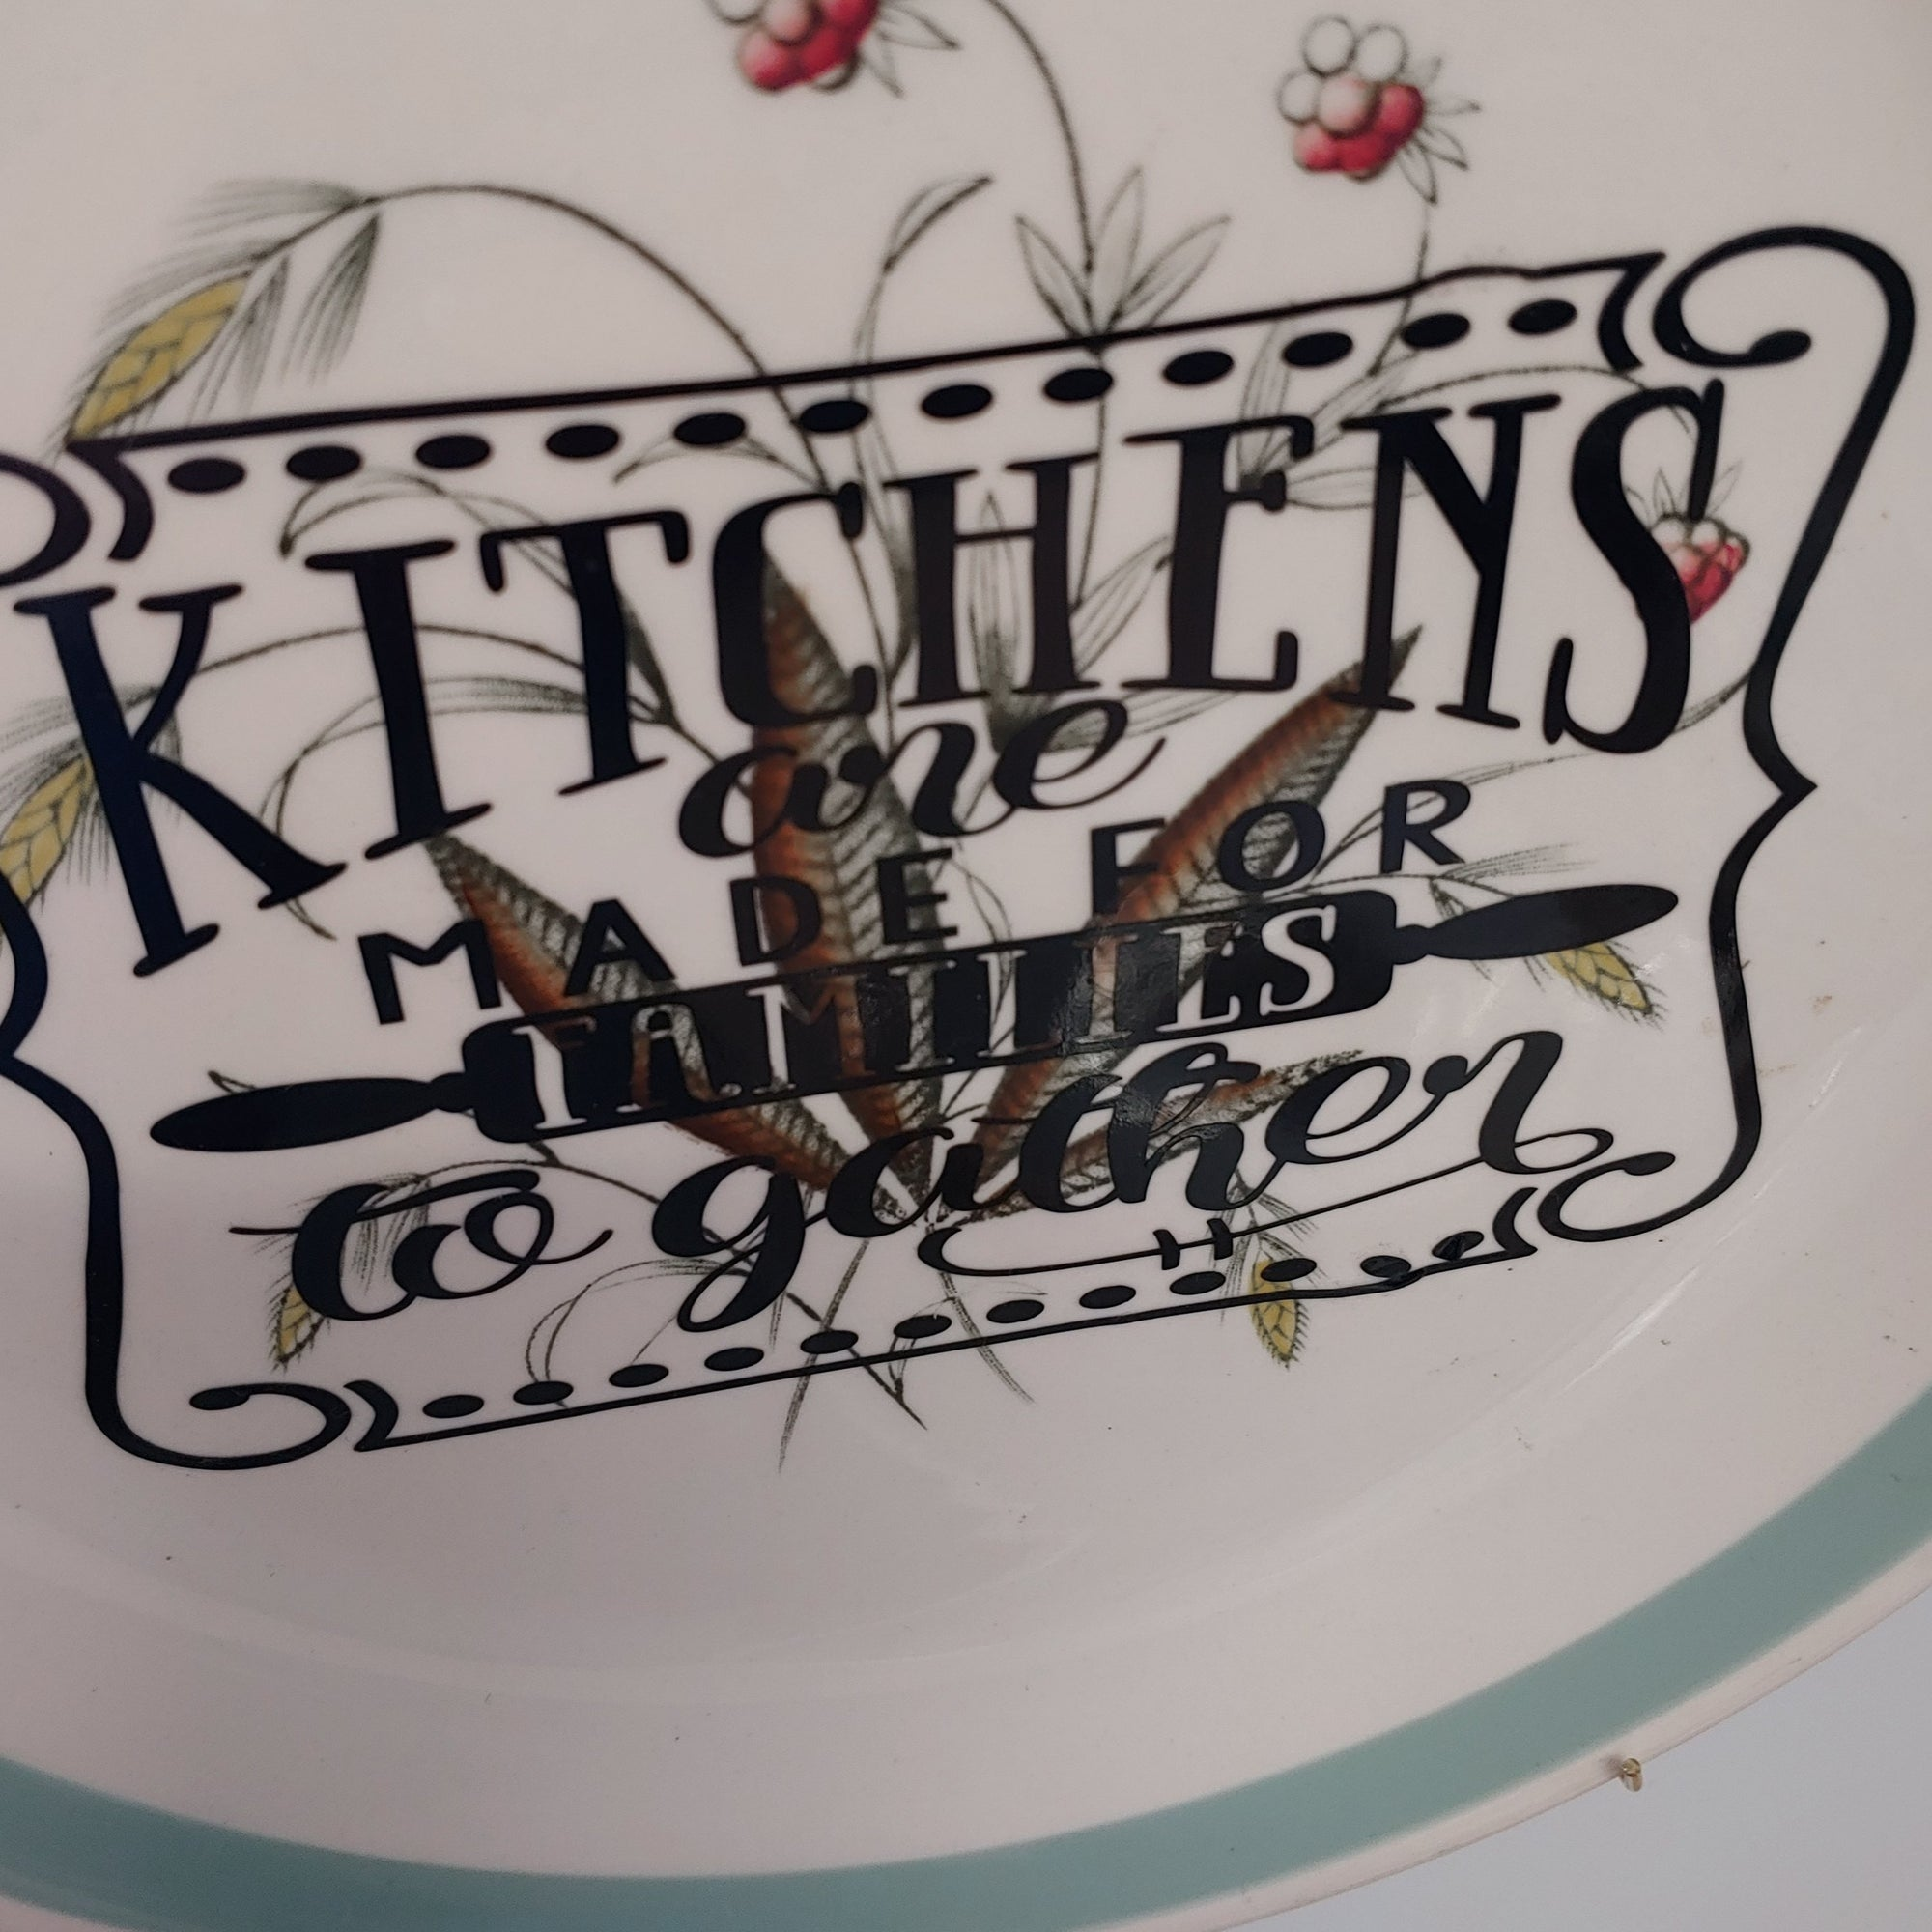 Kitchens plate - Phoenix Remix